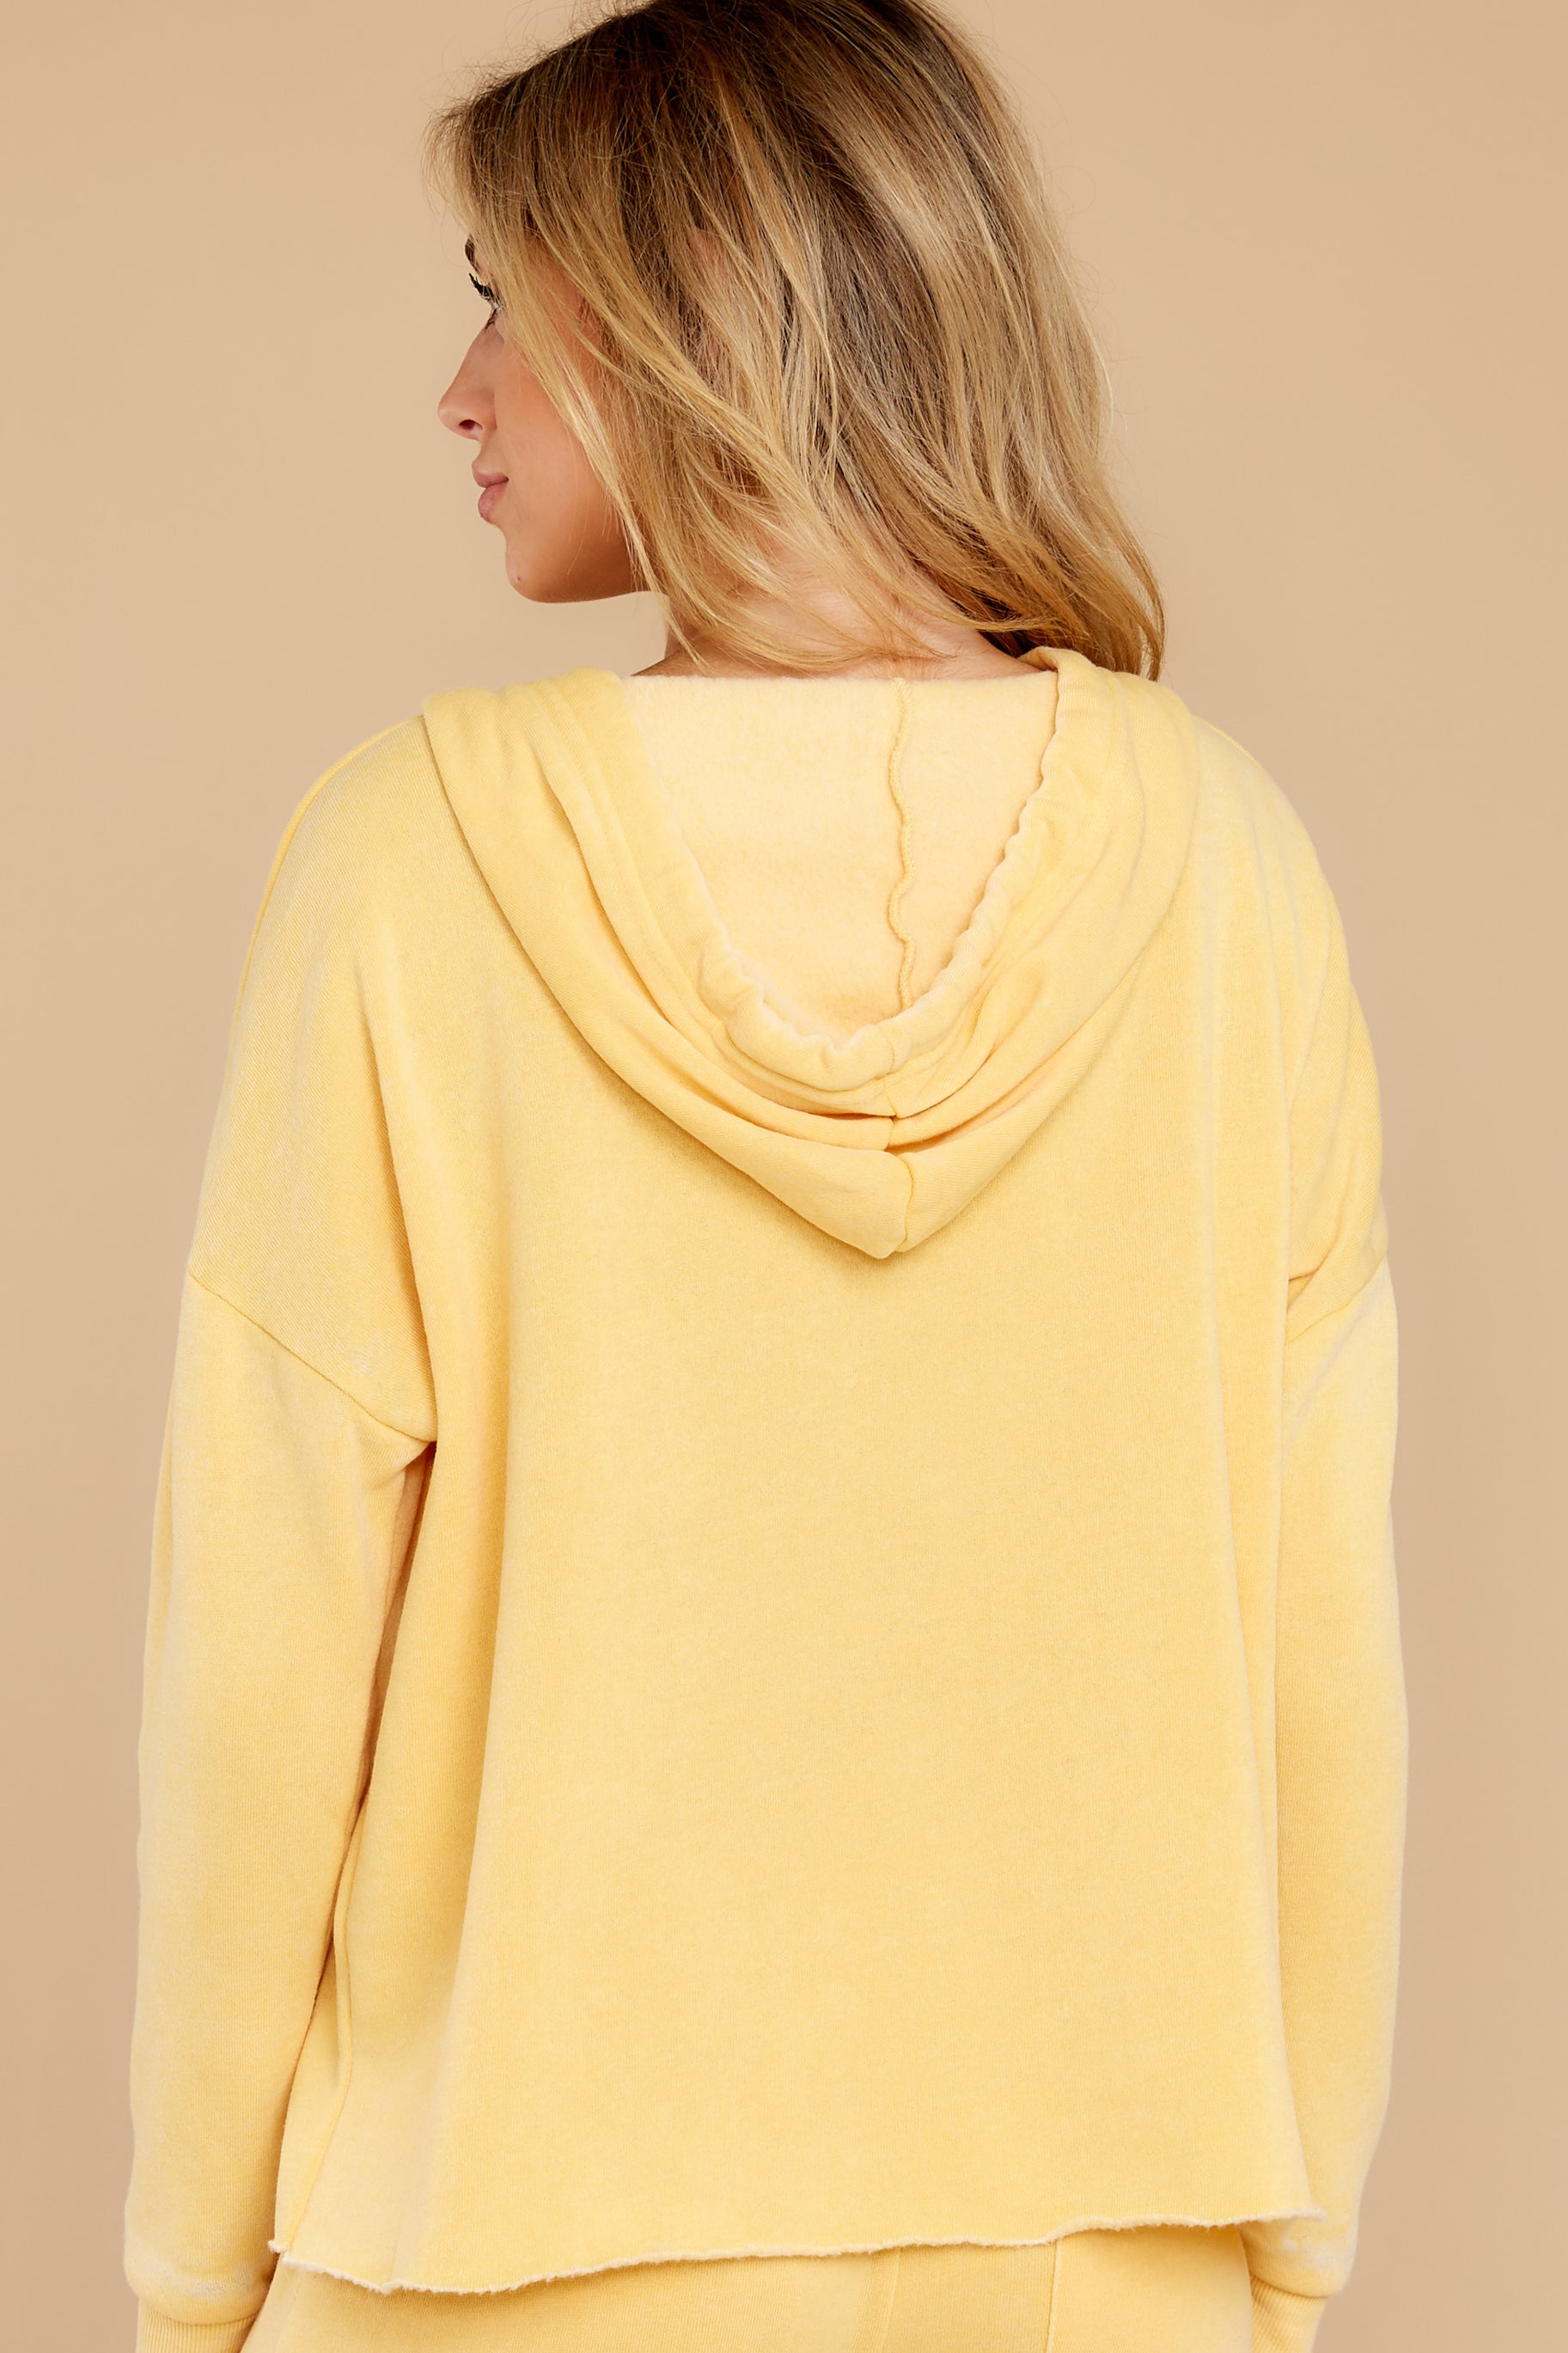 Cuddle Me Crazy Sunflower Yellow Hoodie